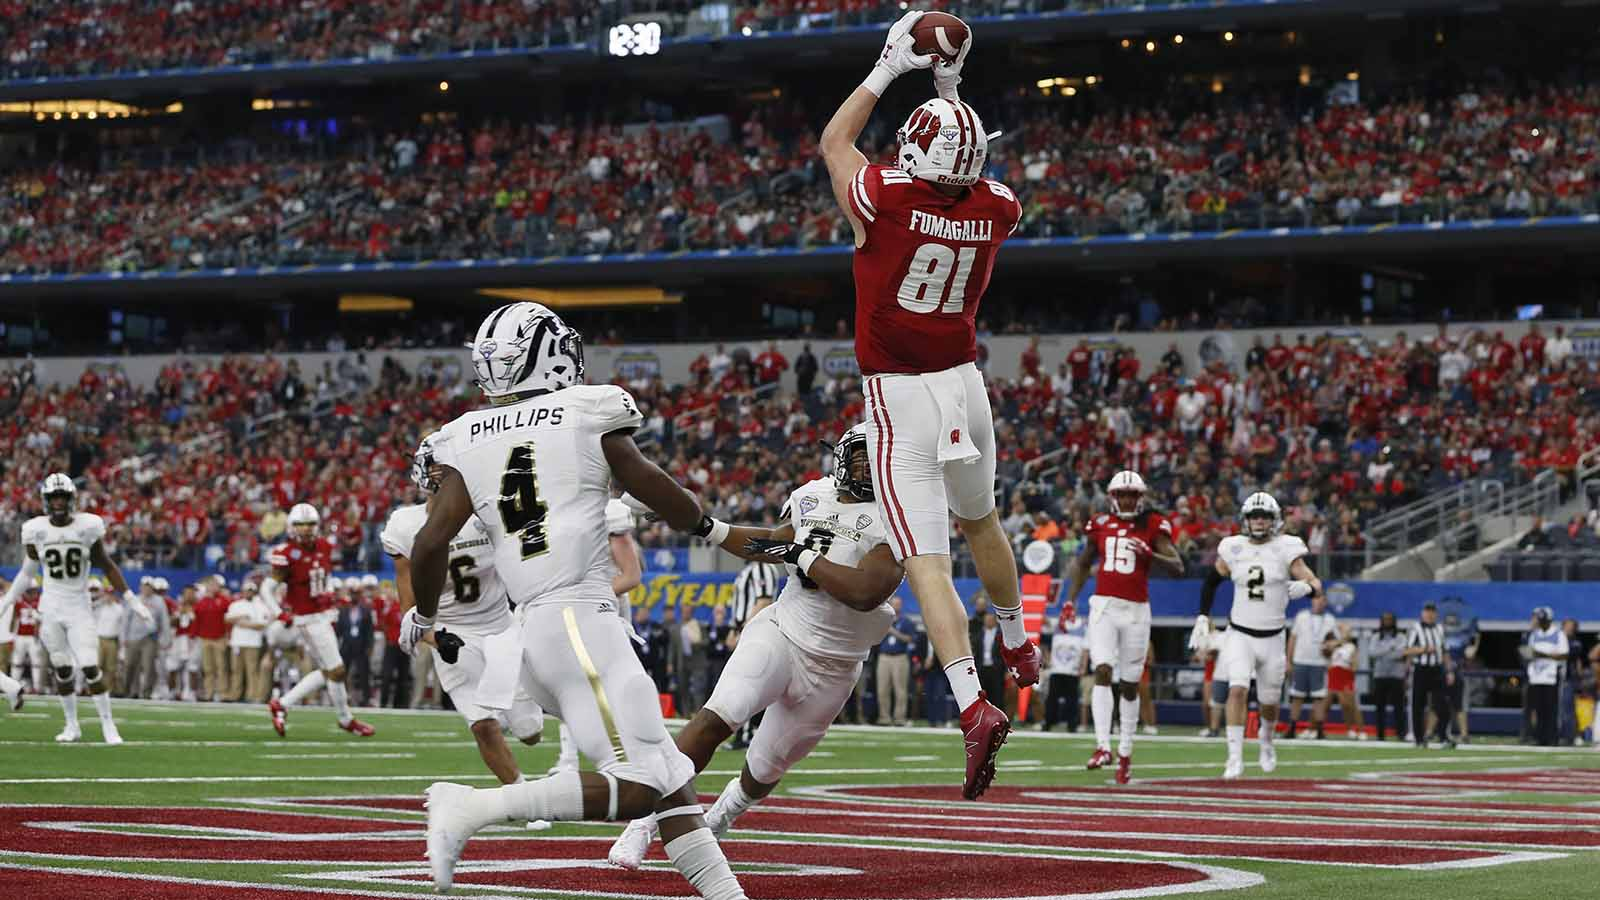 Upon Further Review: Wisconsin vs. Western Michigan